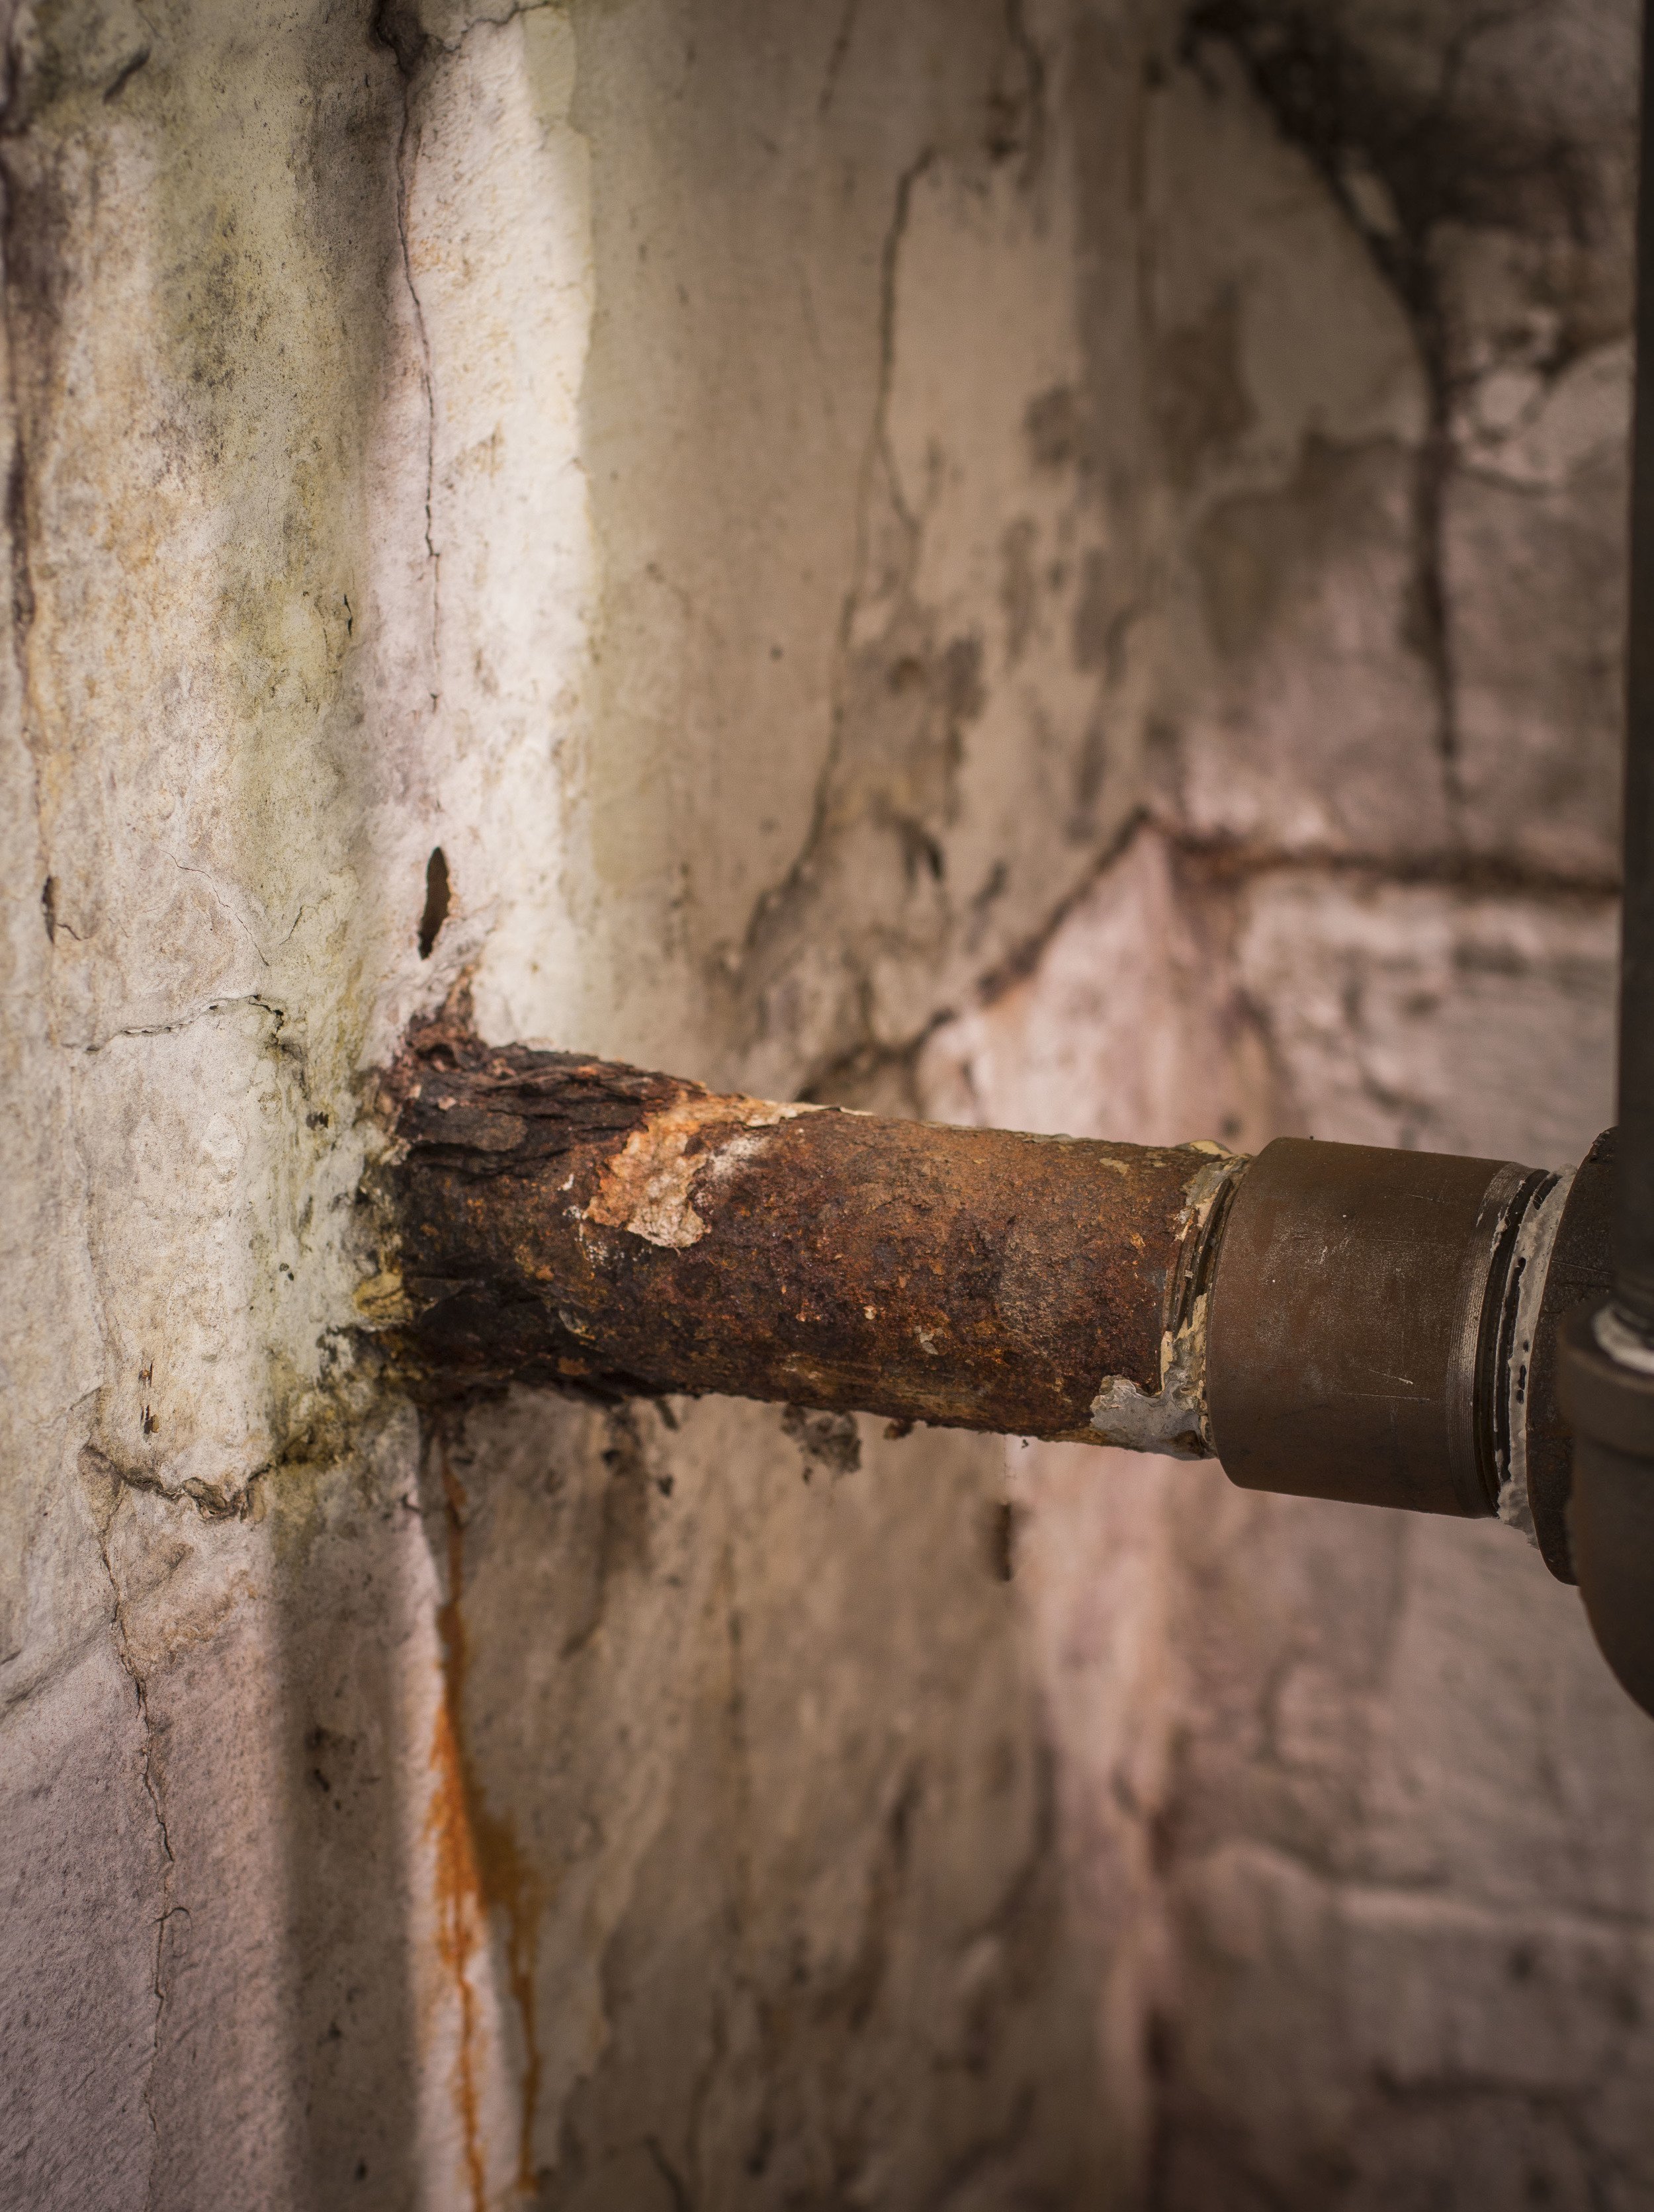 Pipe to the gas meter. Although it looks neglected, a new pipe was recently run inside of this corroded mess.